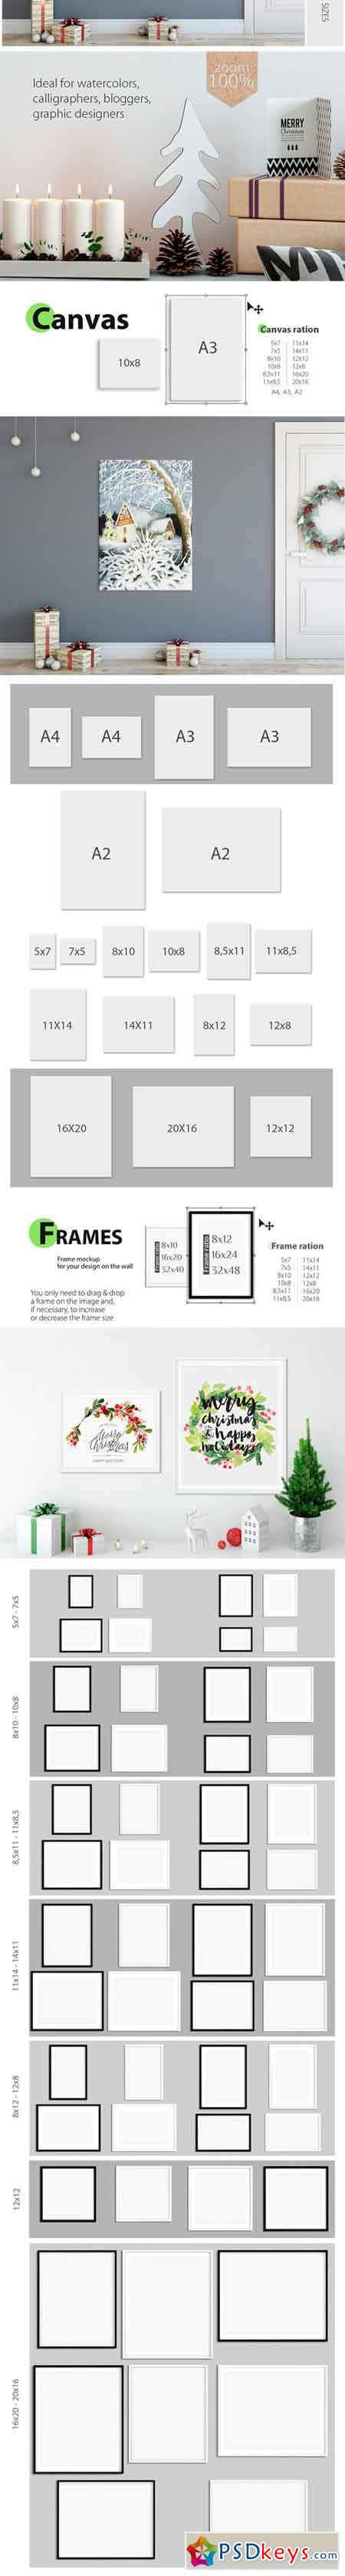 Christmas Frame Mockup Bundle 1923302